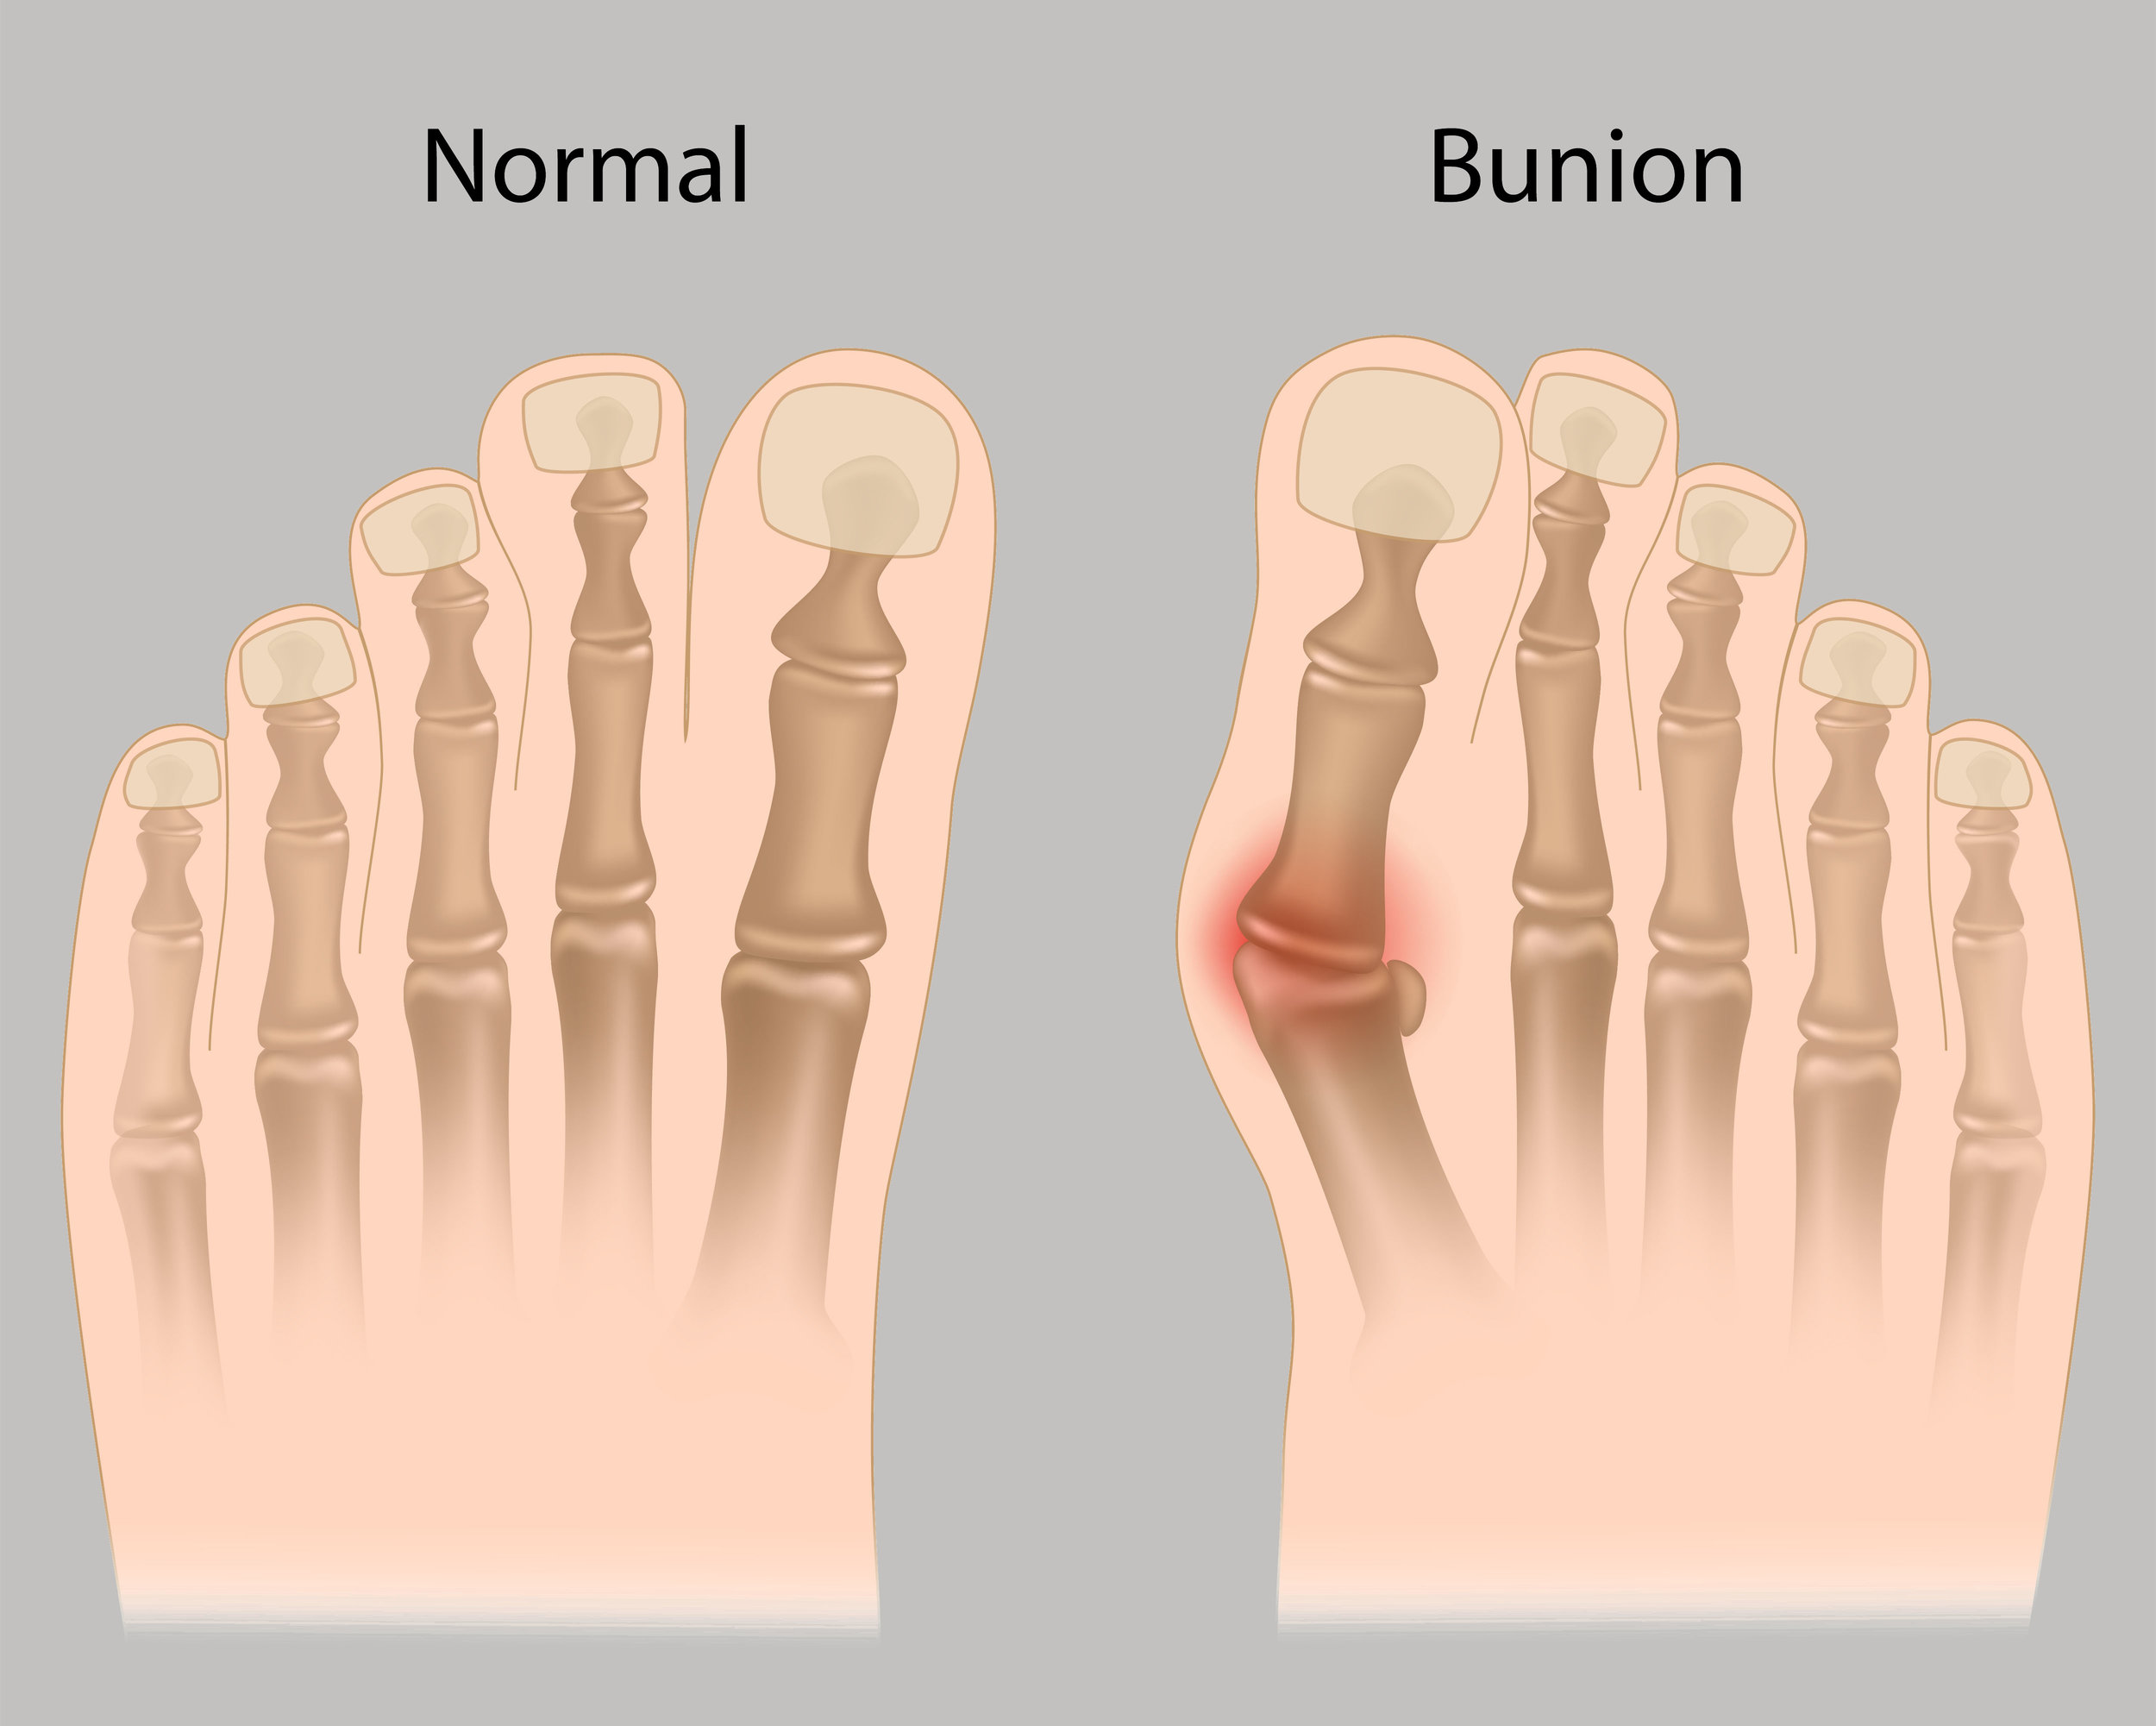 bunion surgery by bunion surgeon Dr. Boris Abramov serving pikesville, maryland